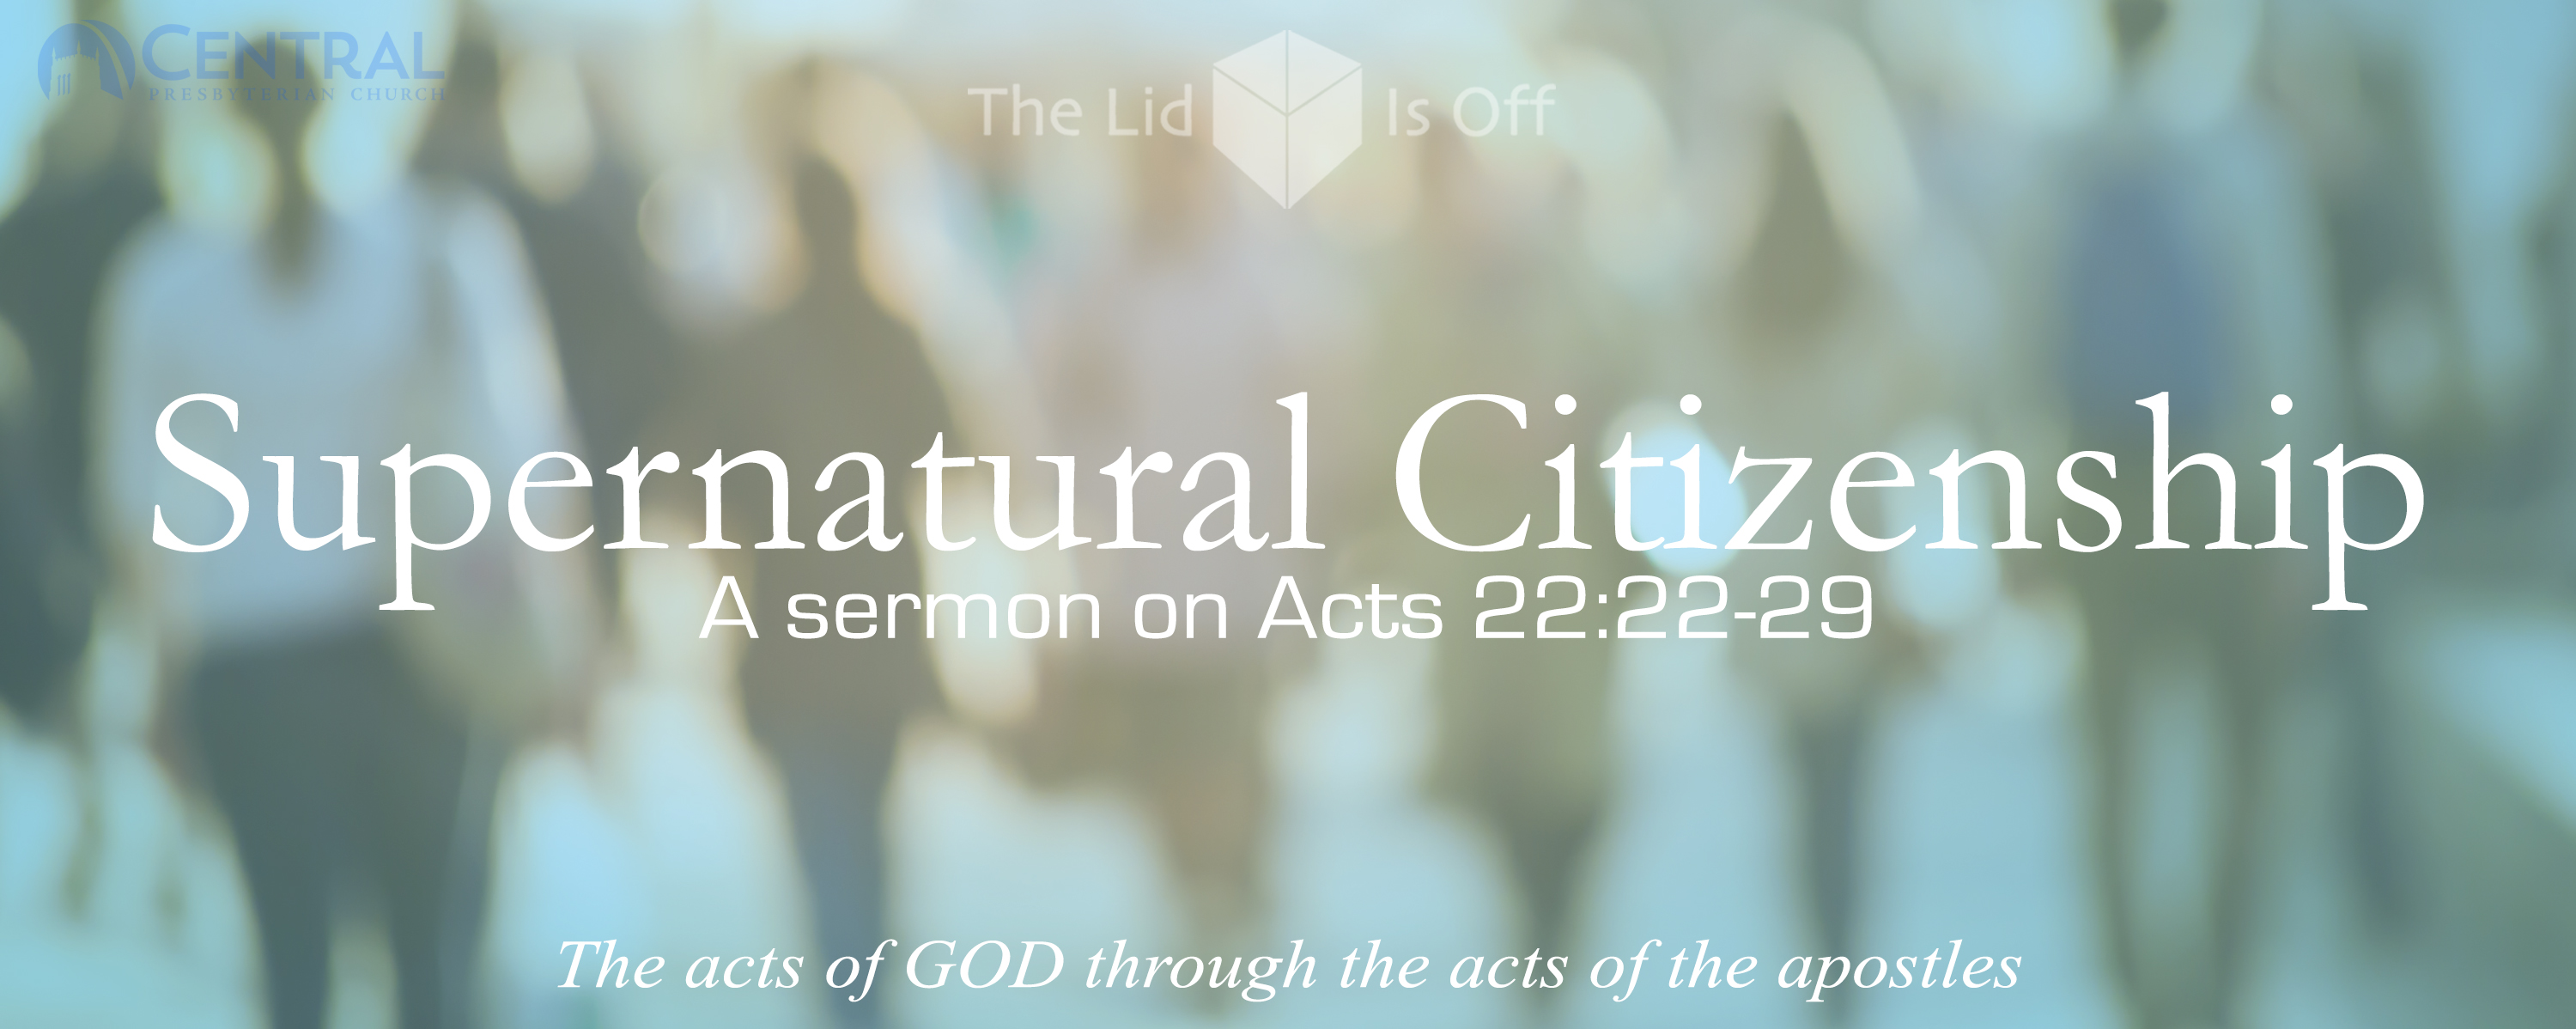 Supernatural Citizenship